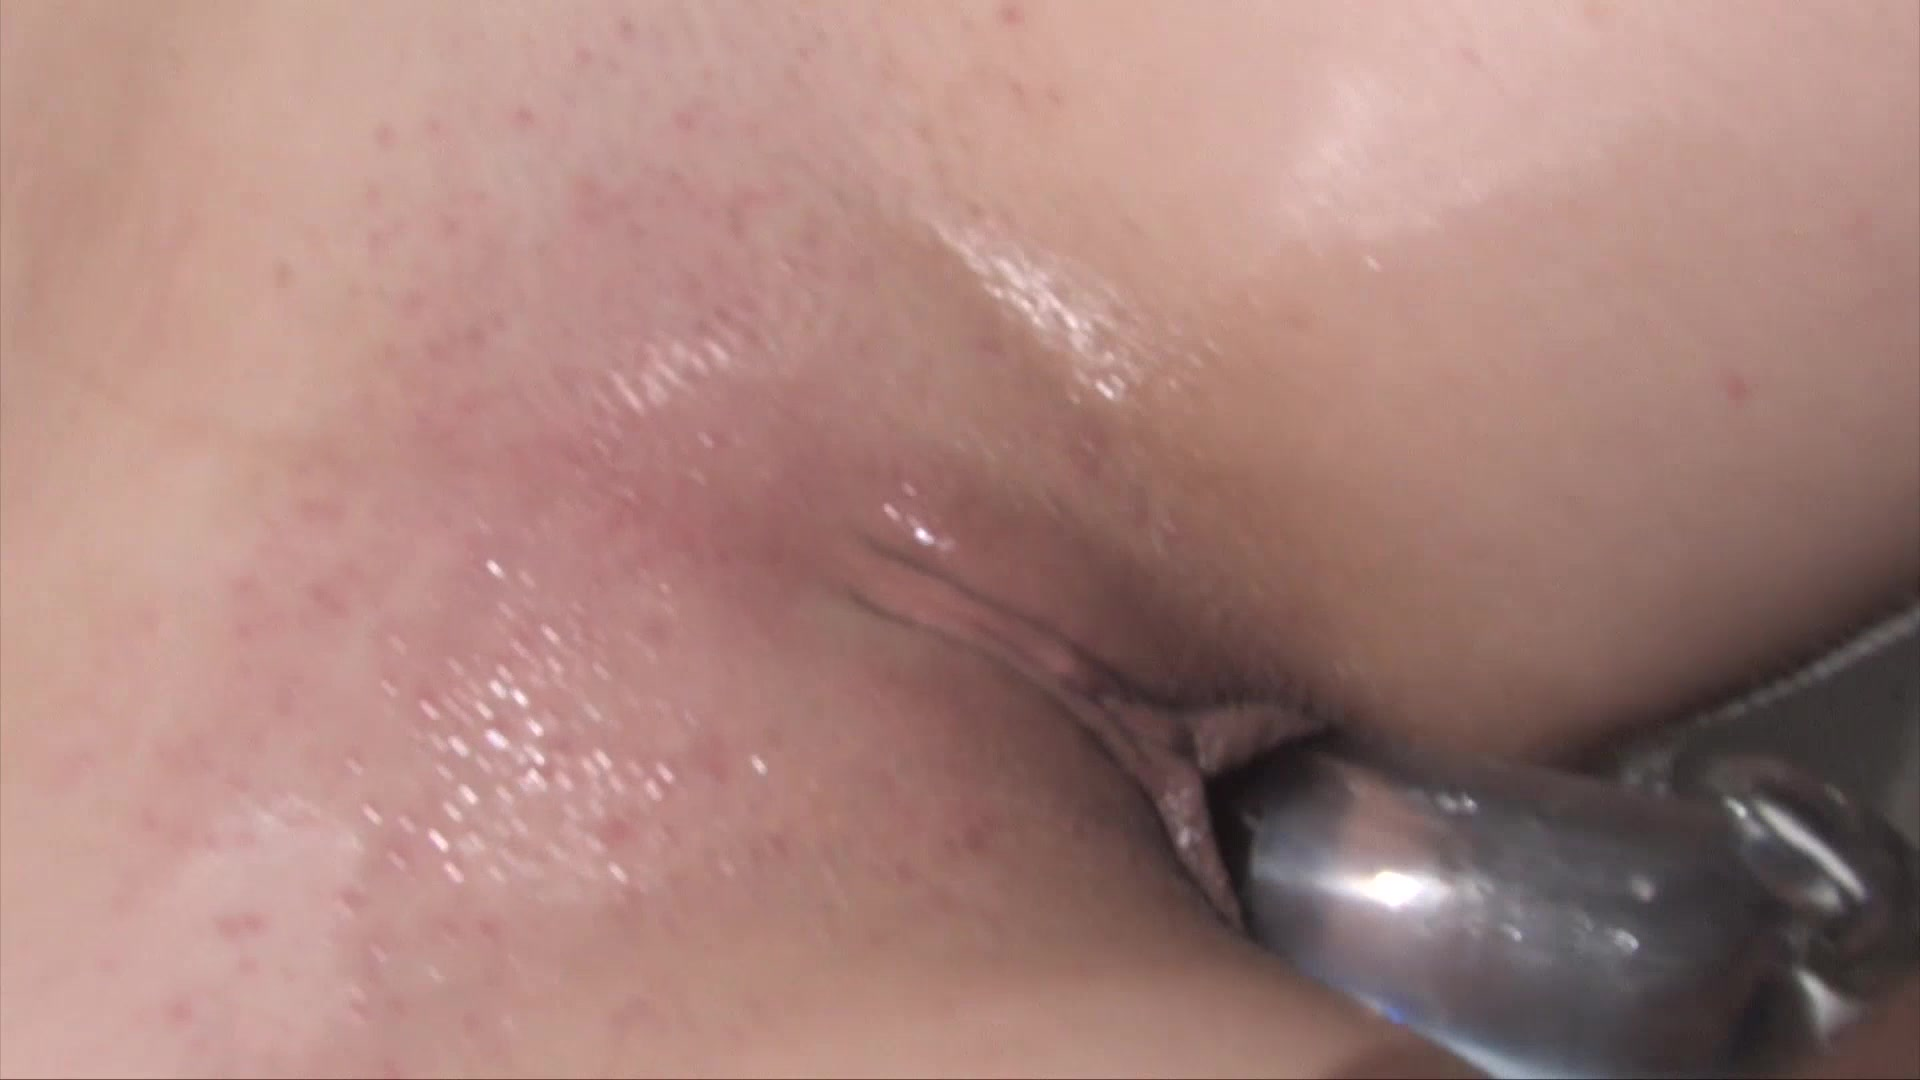 Running water on clit video